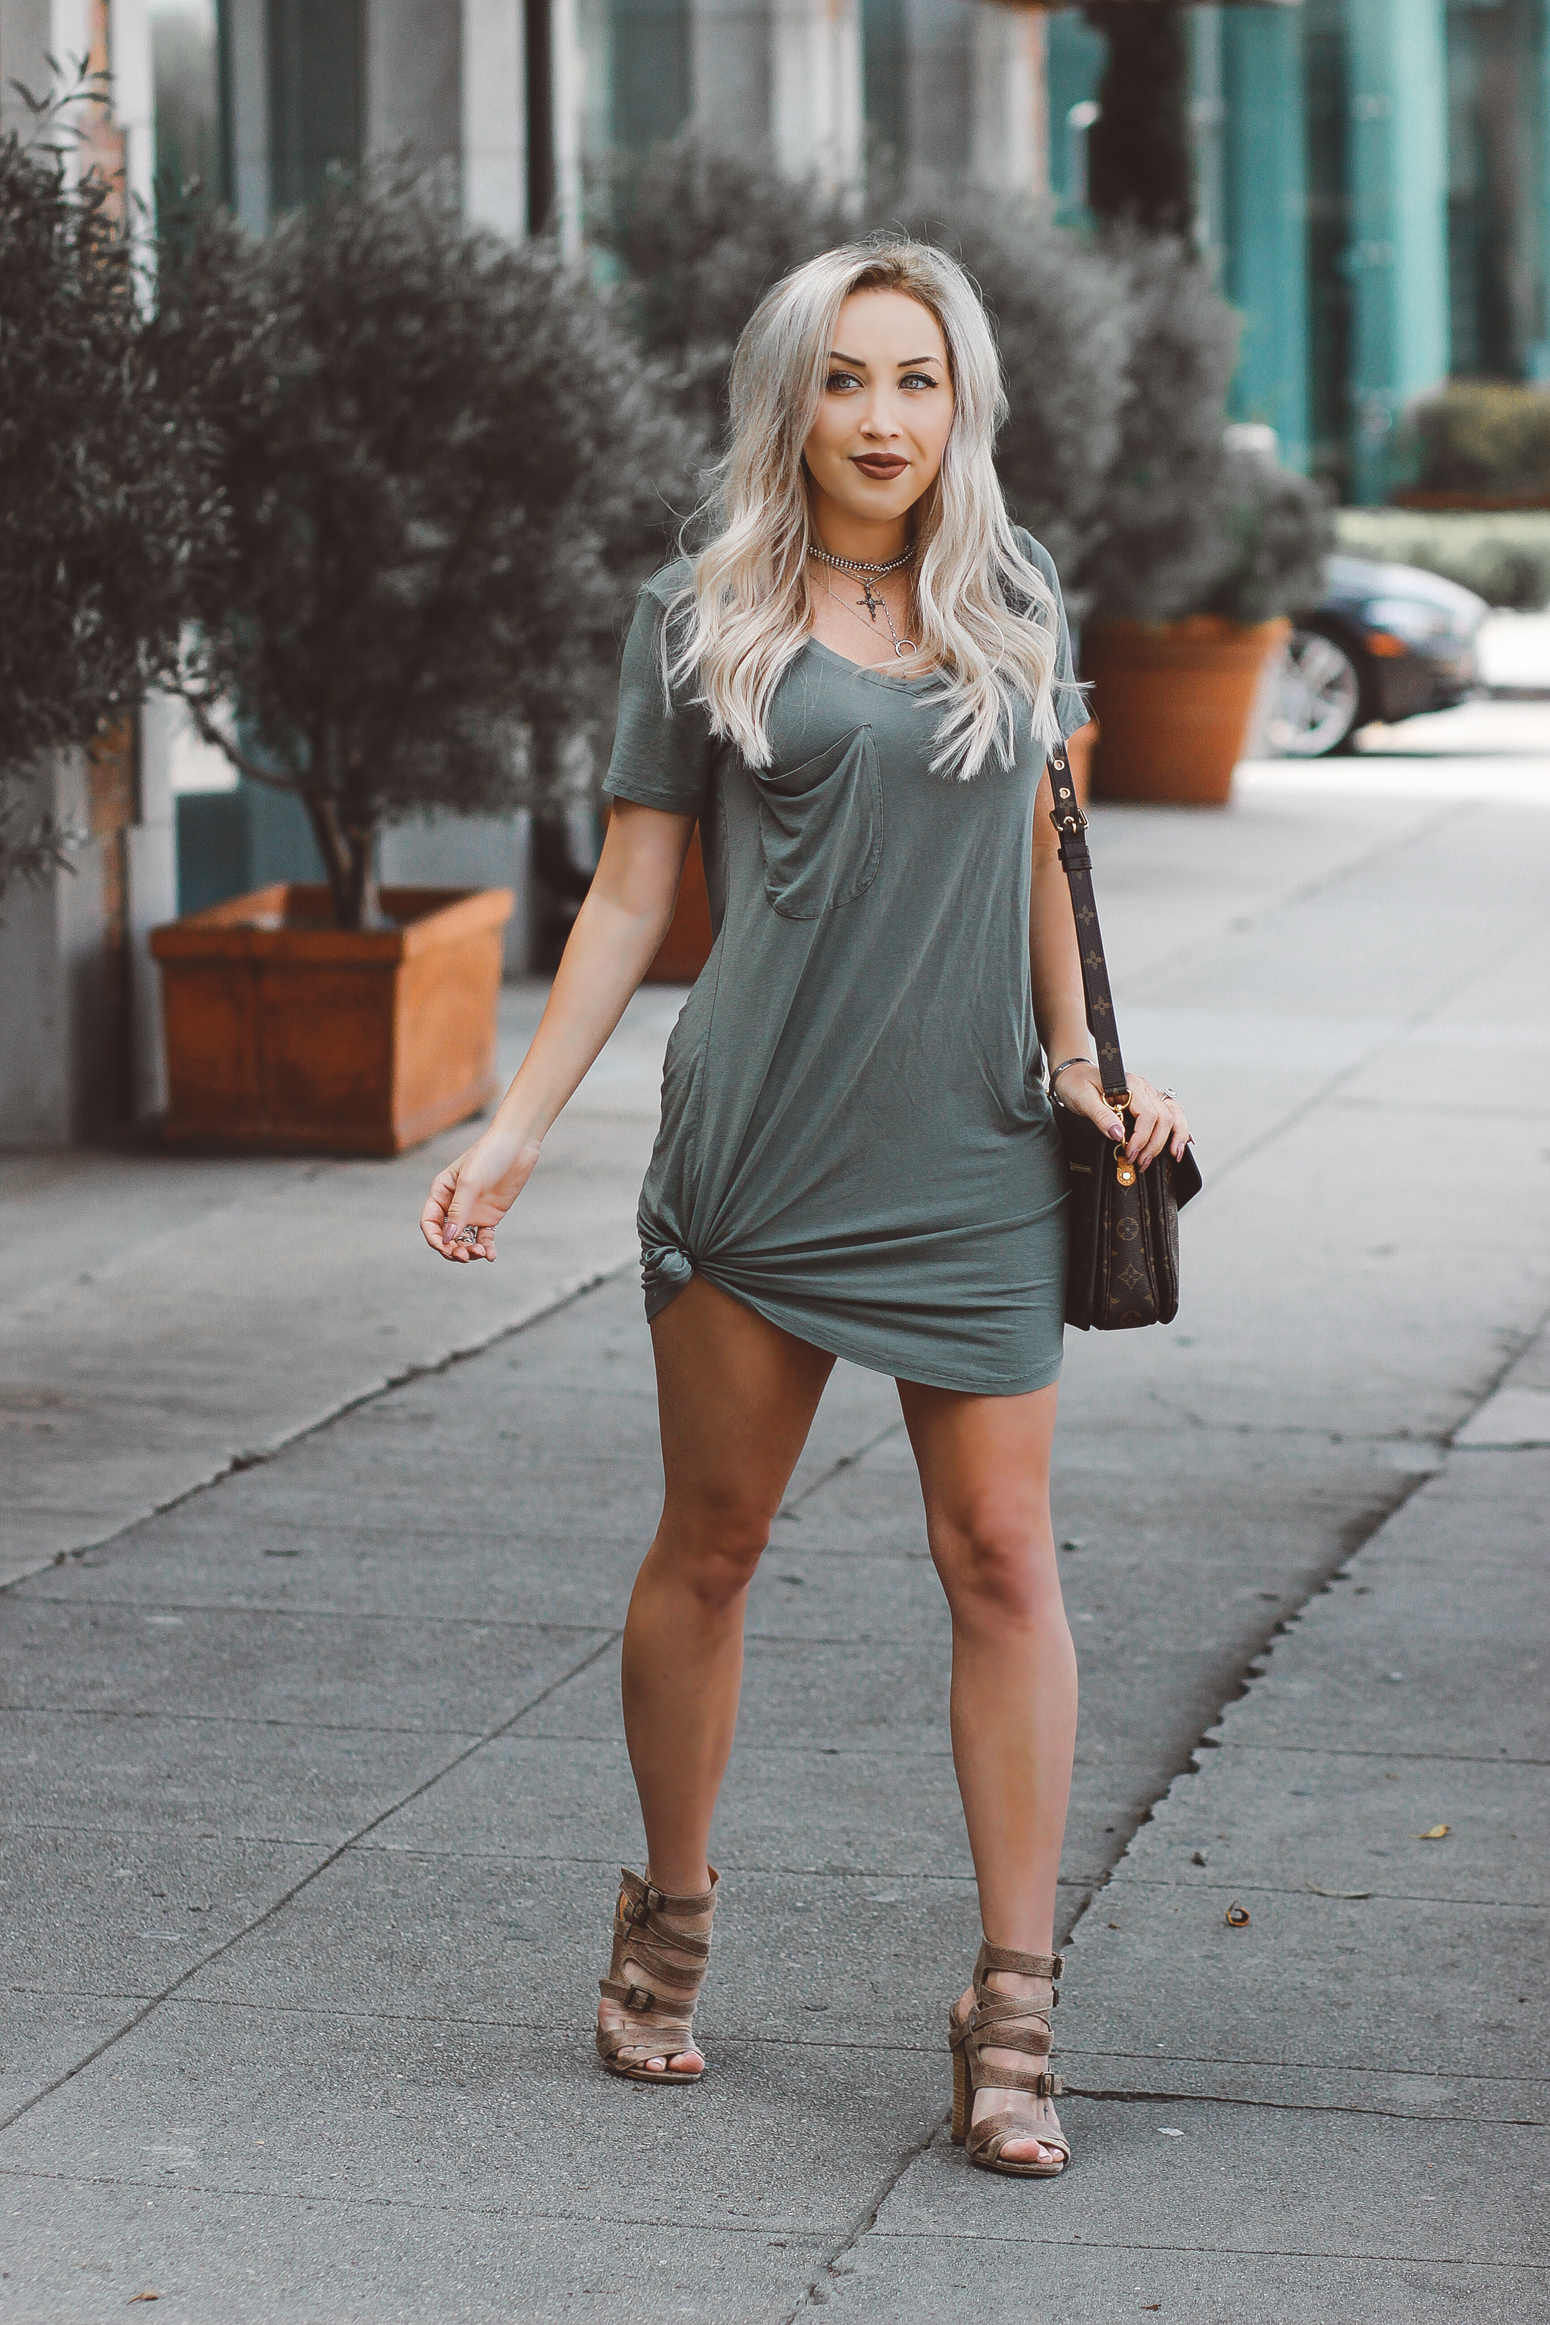 Blondie in the City | Green T-Shirt Dress @shopather | Louis Vuitton Pochette metis | Bohemian Jewelry @shopdixi